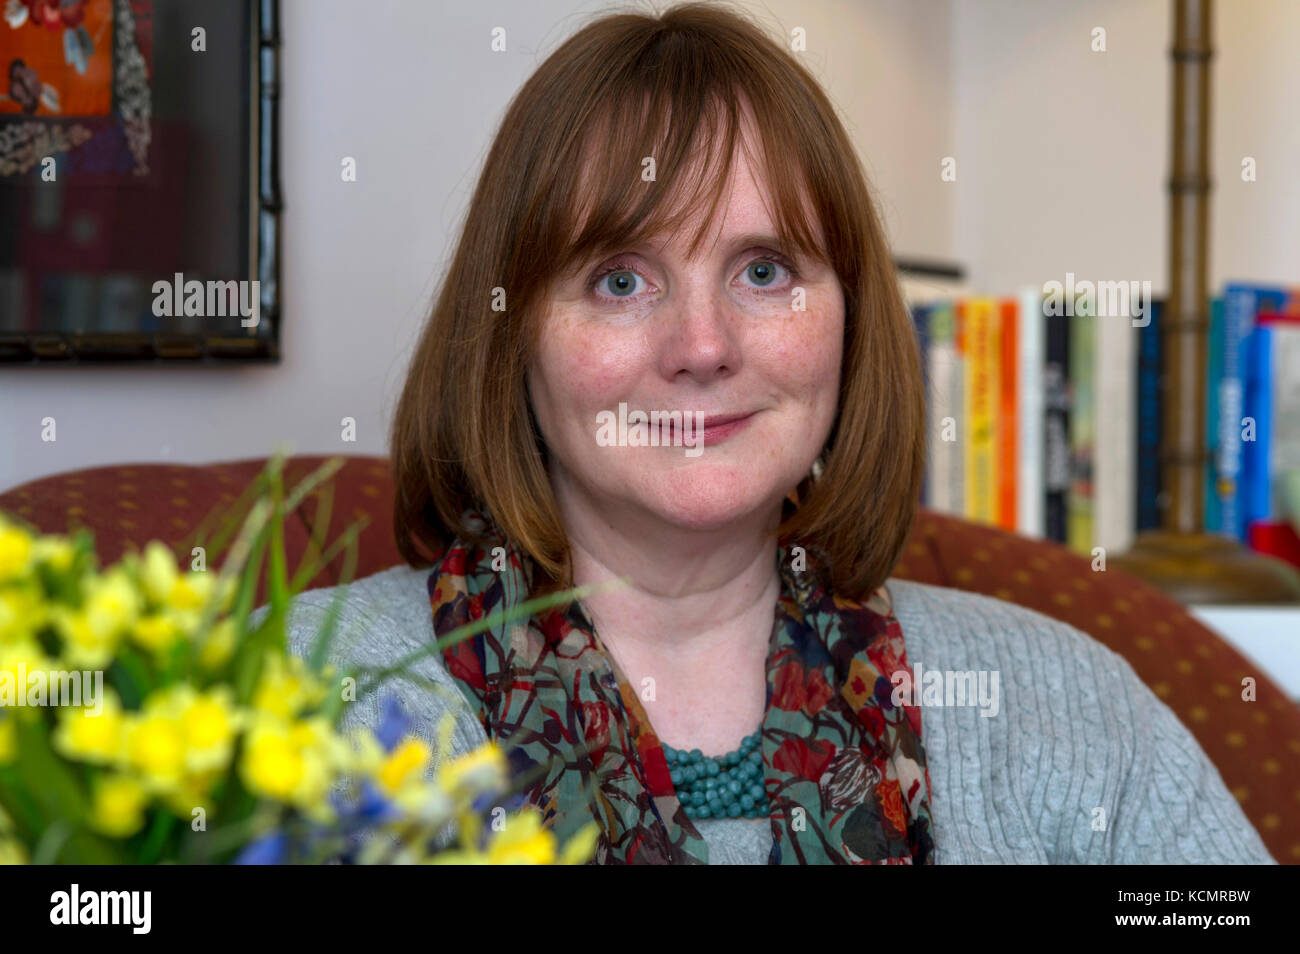 Author Sarah Hilary - Stock Image